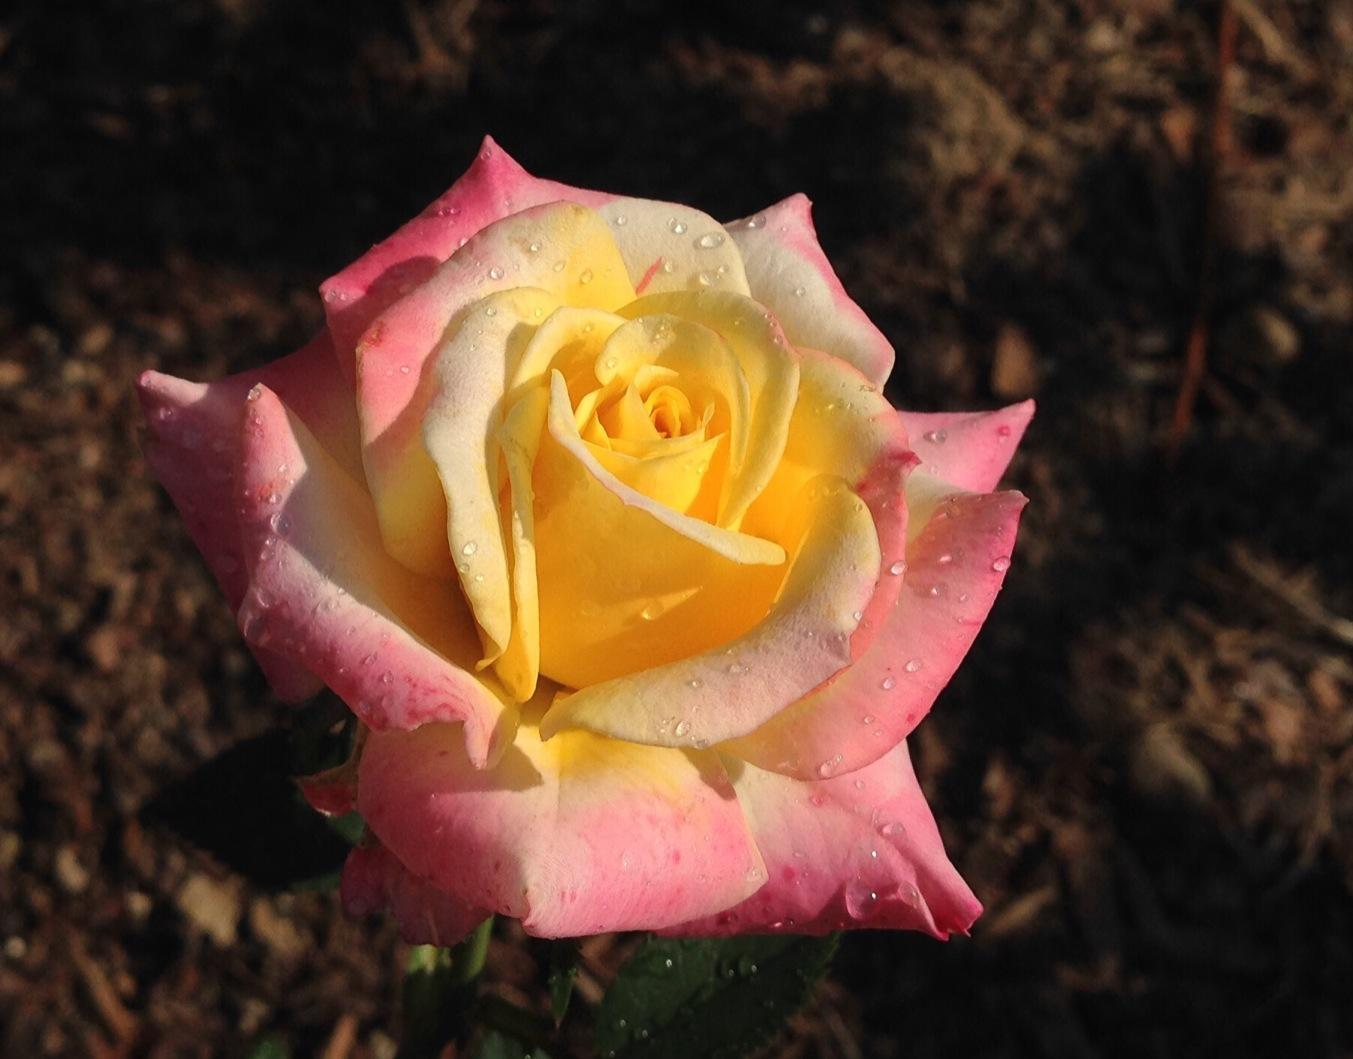 Bee's Knees miniature rose is new to my garden. Loving it already. #gardenchat #rosechat http://t.co/iqCESckDAM